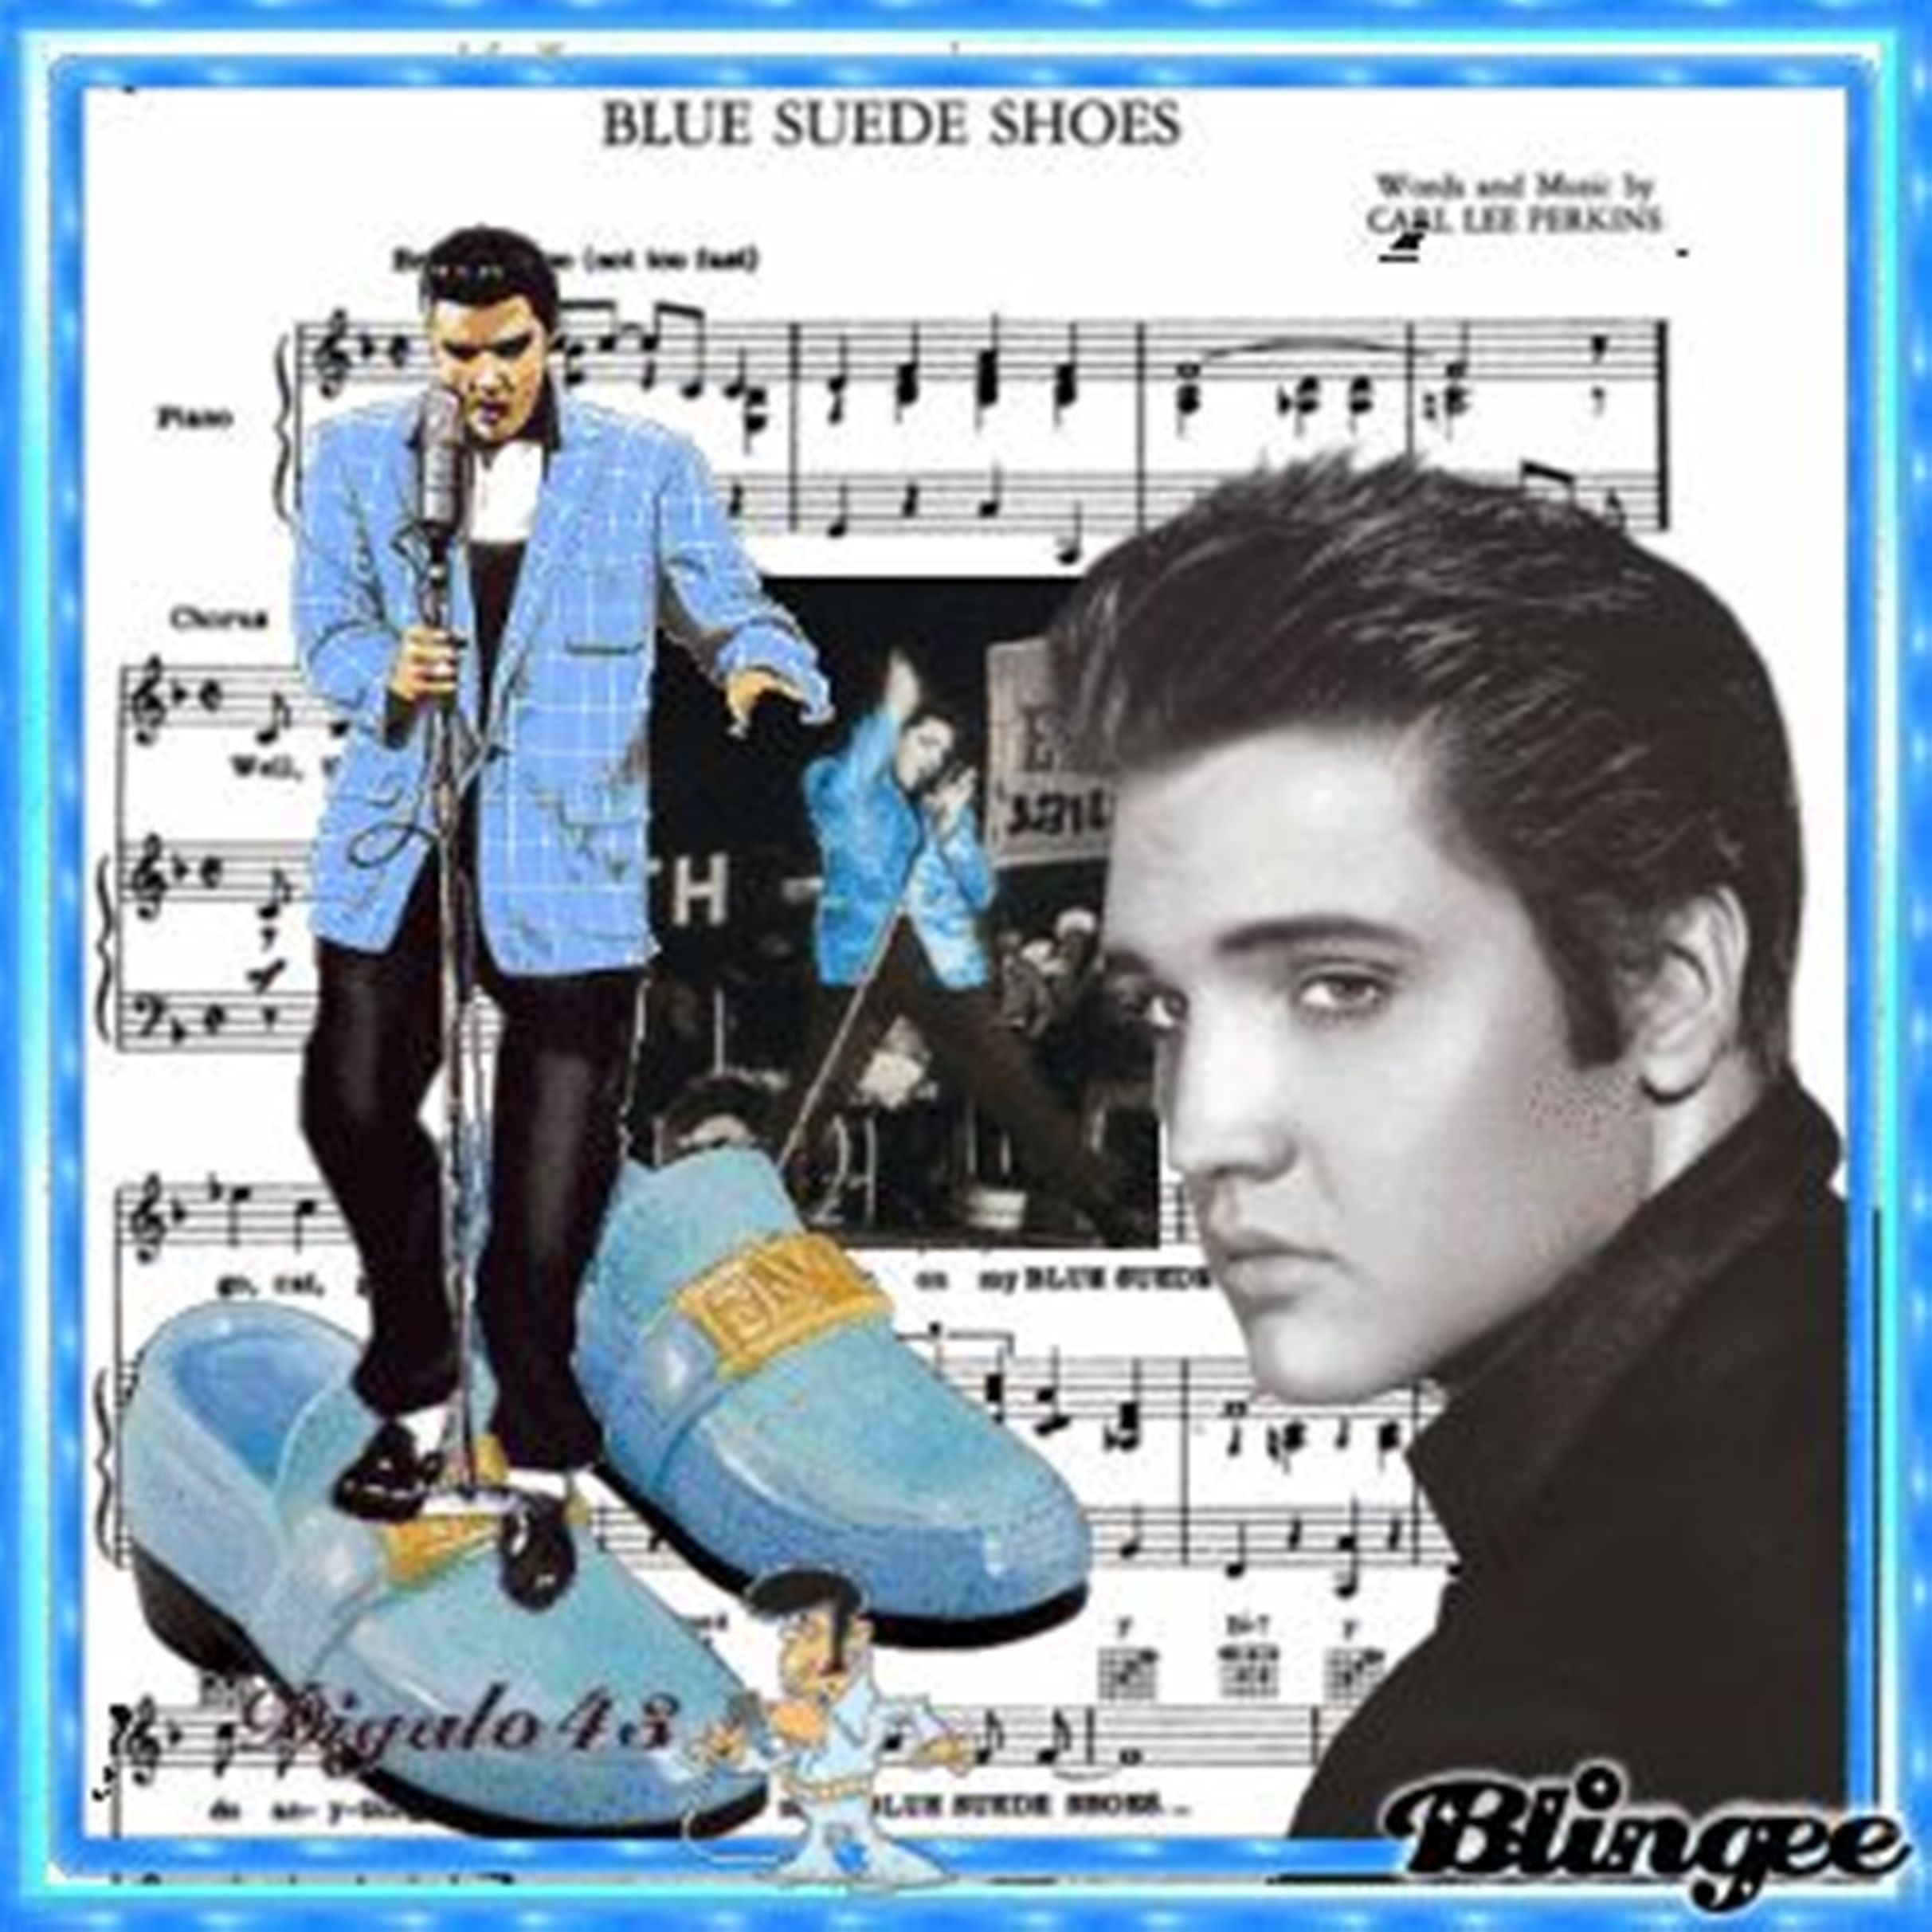 Elvis Blue Suede Shoes, Blue